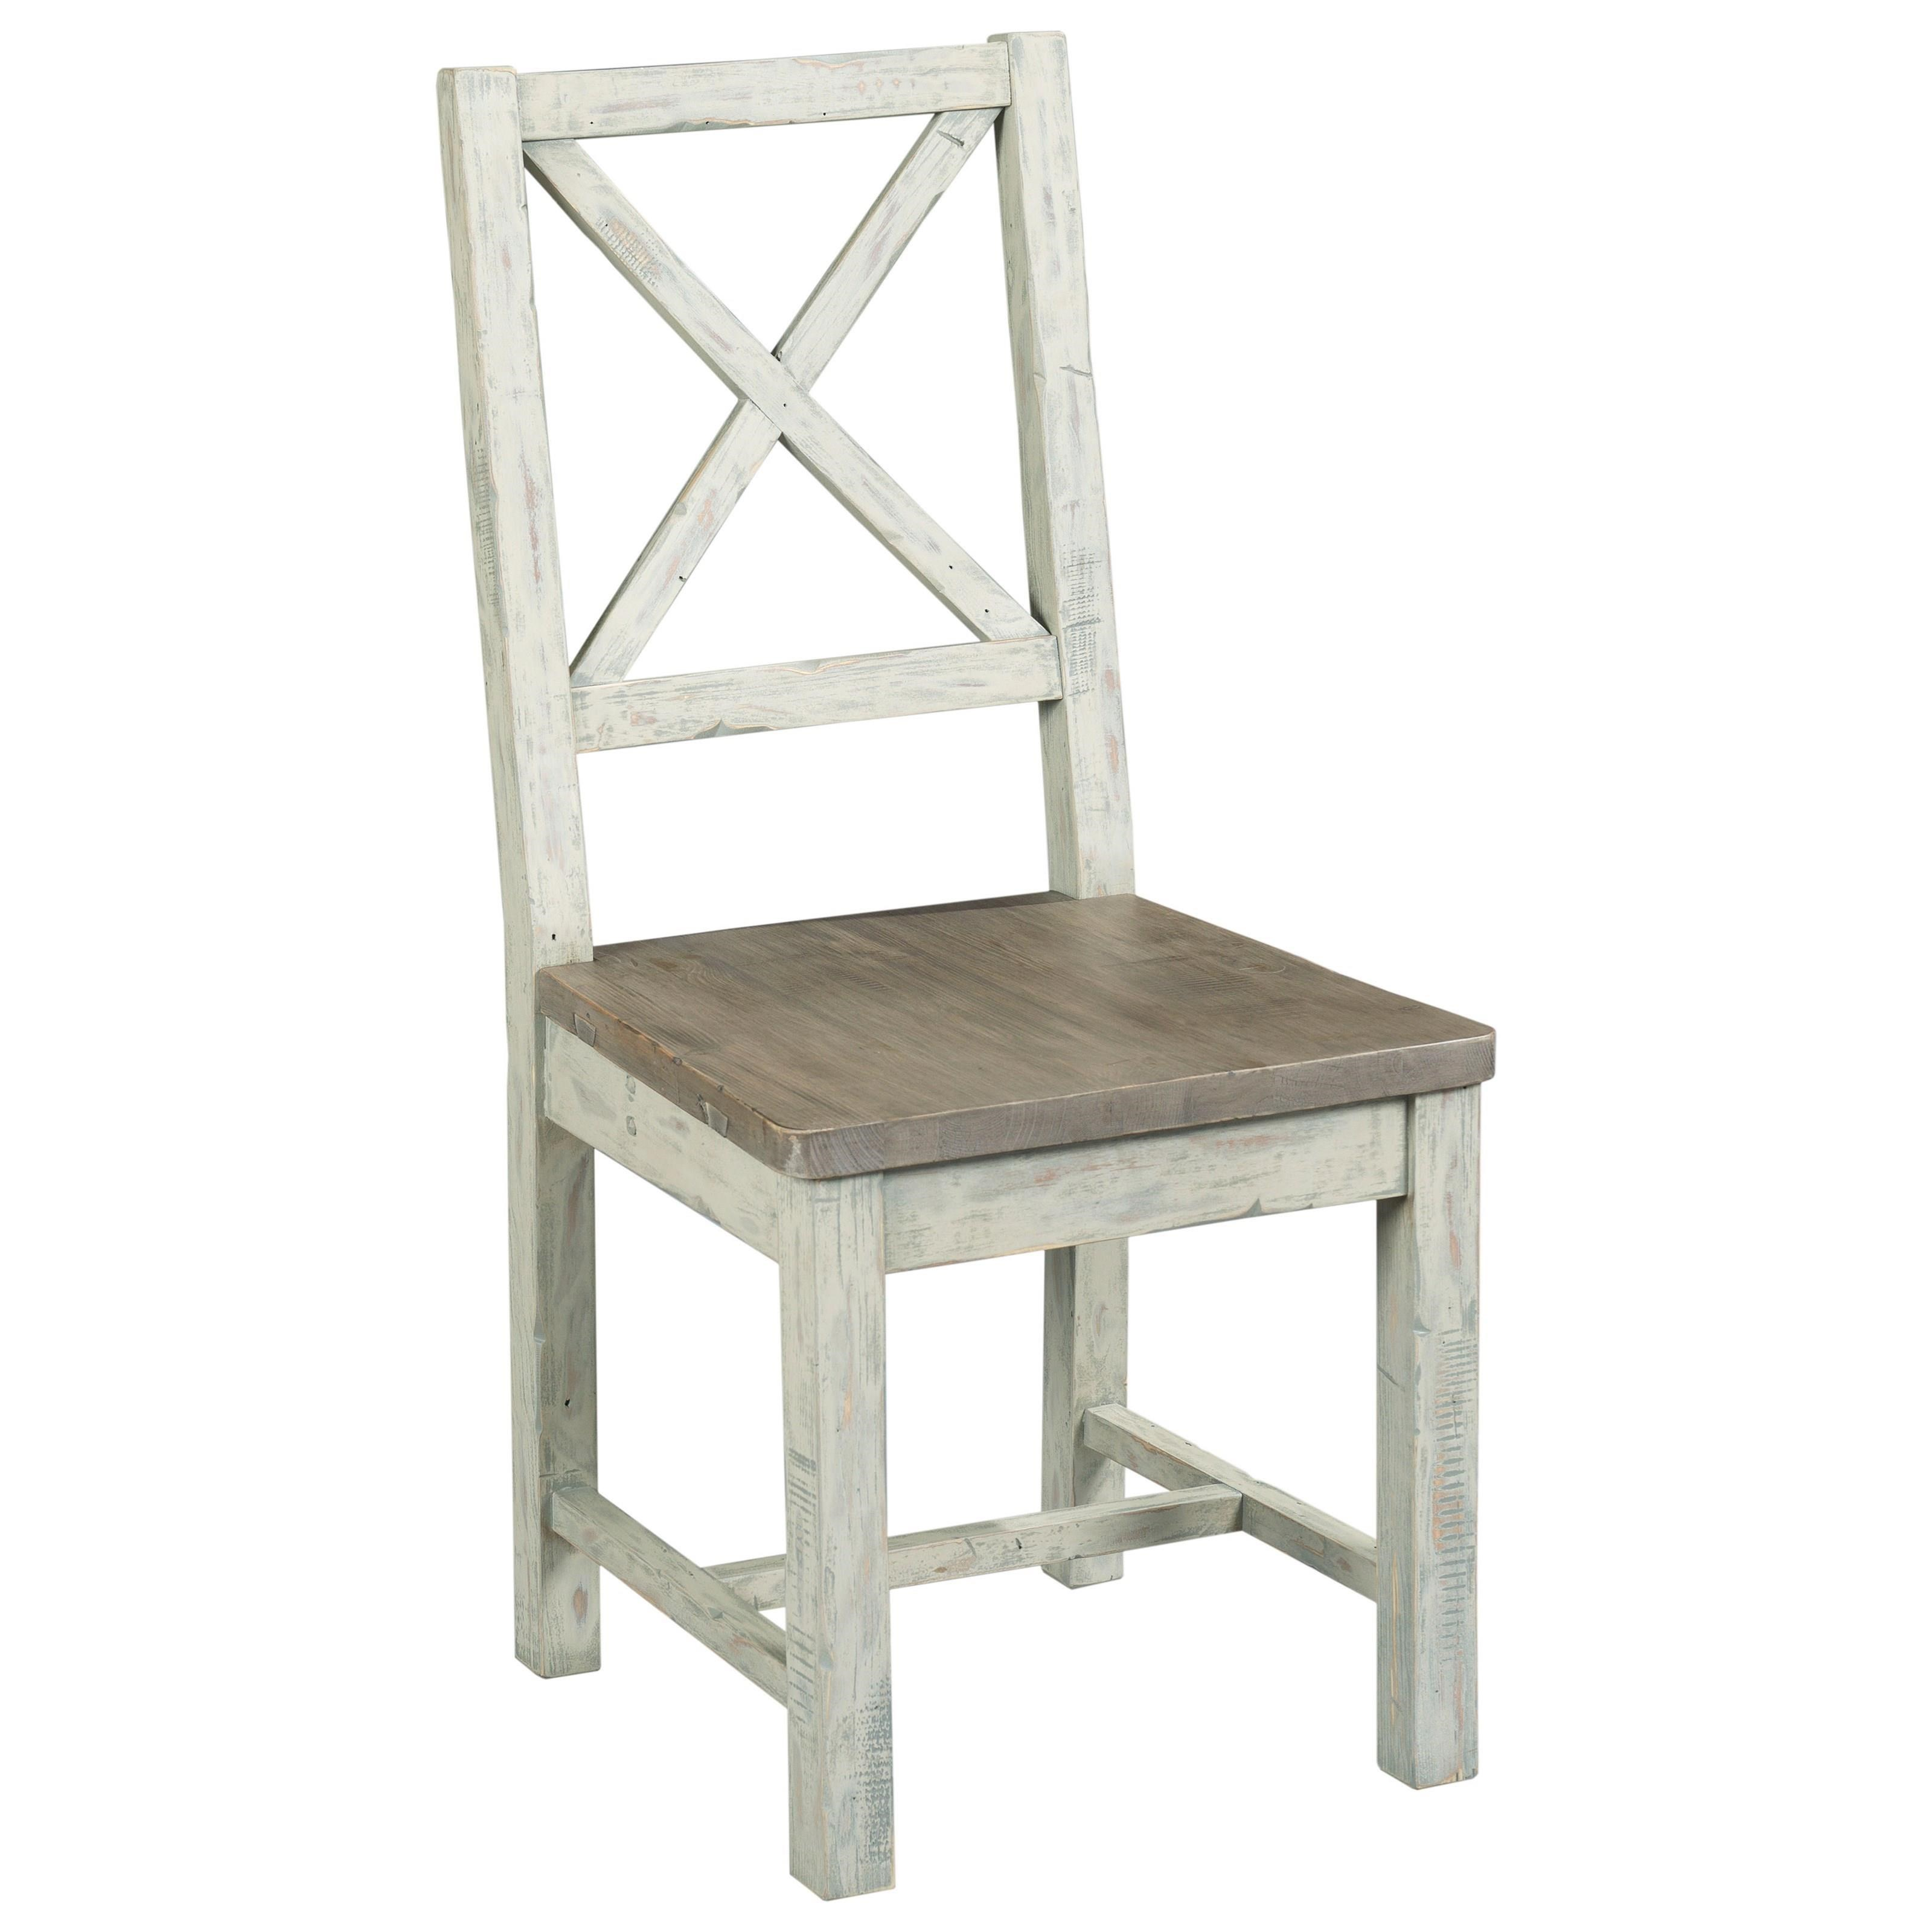 Reclamation Place                                  Desk Chair by Hammary at Mueller Furniture